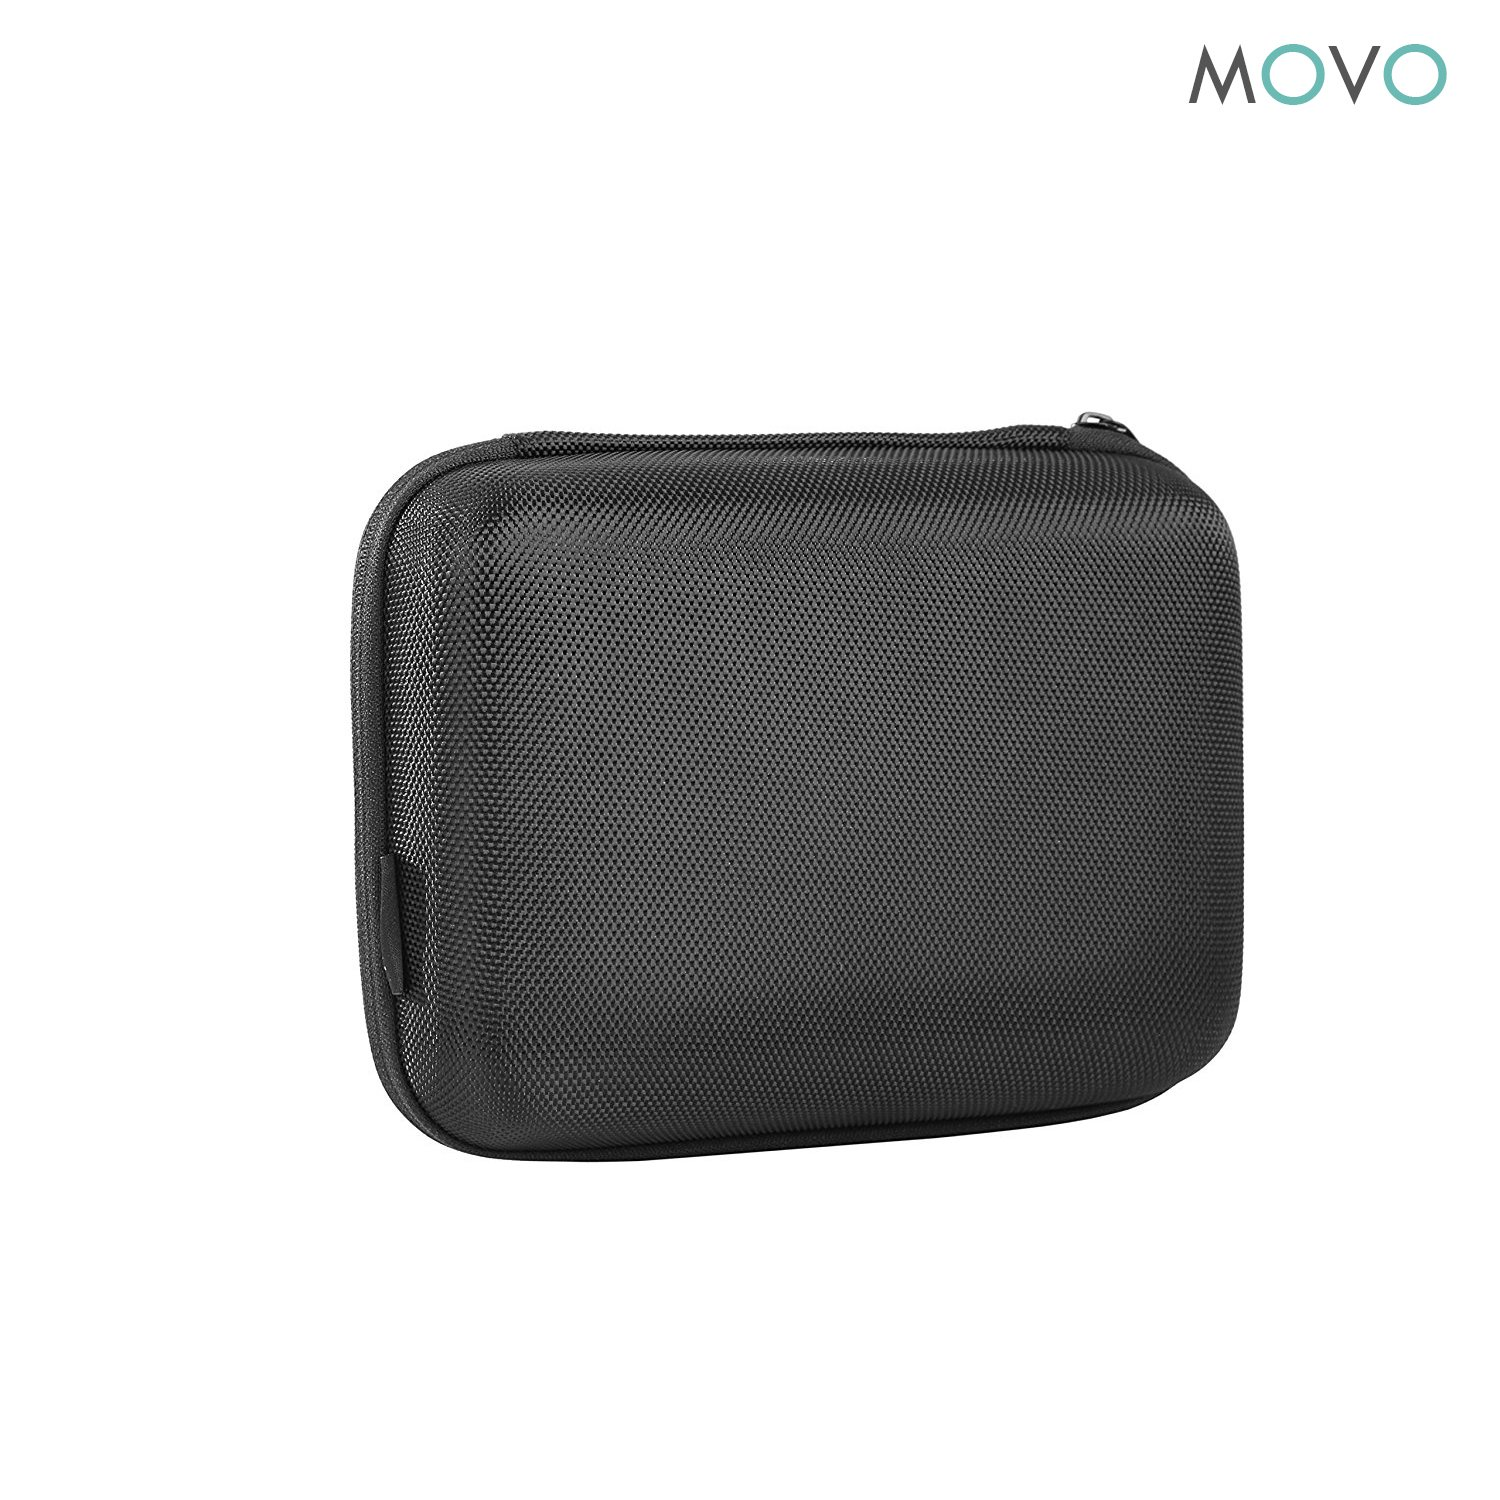 Movo Smartphone Video Kit V5 with Grip Rig, Mini Microphone, LED Light & Wireless Remote - for iPhone 5, 5C, 5S, 6, 6S, 7, 8, X (Regular and Plus), Samsung Galaxy, Note & More